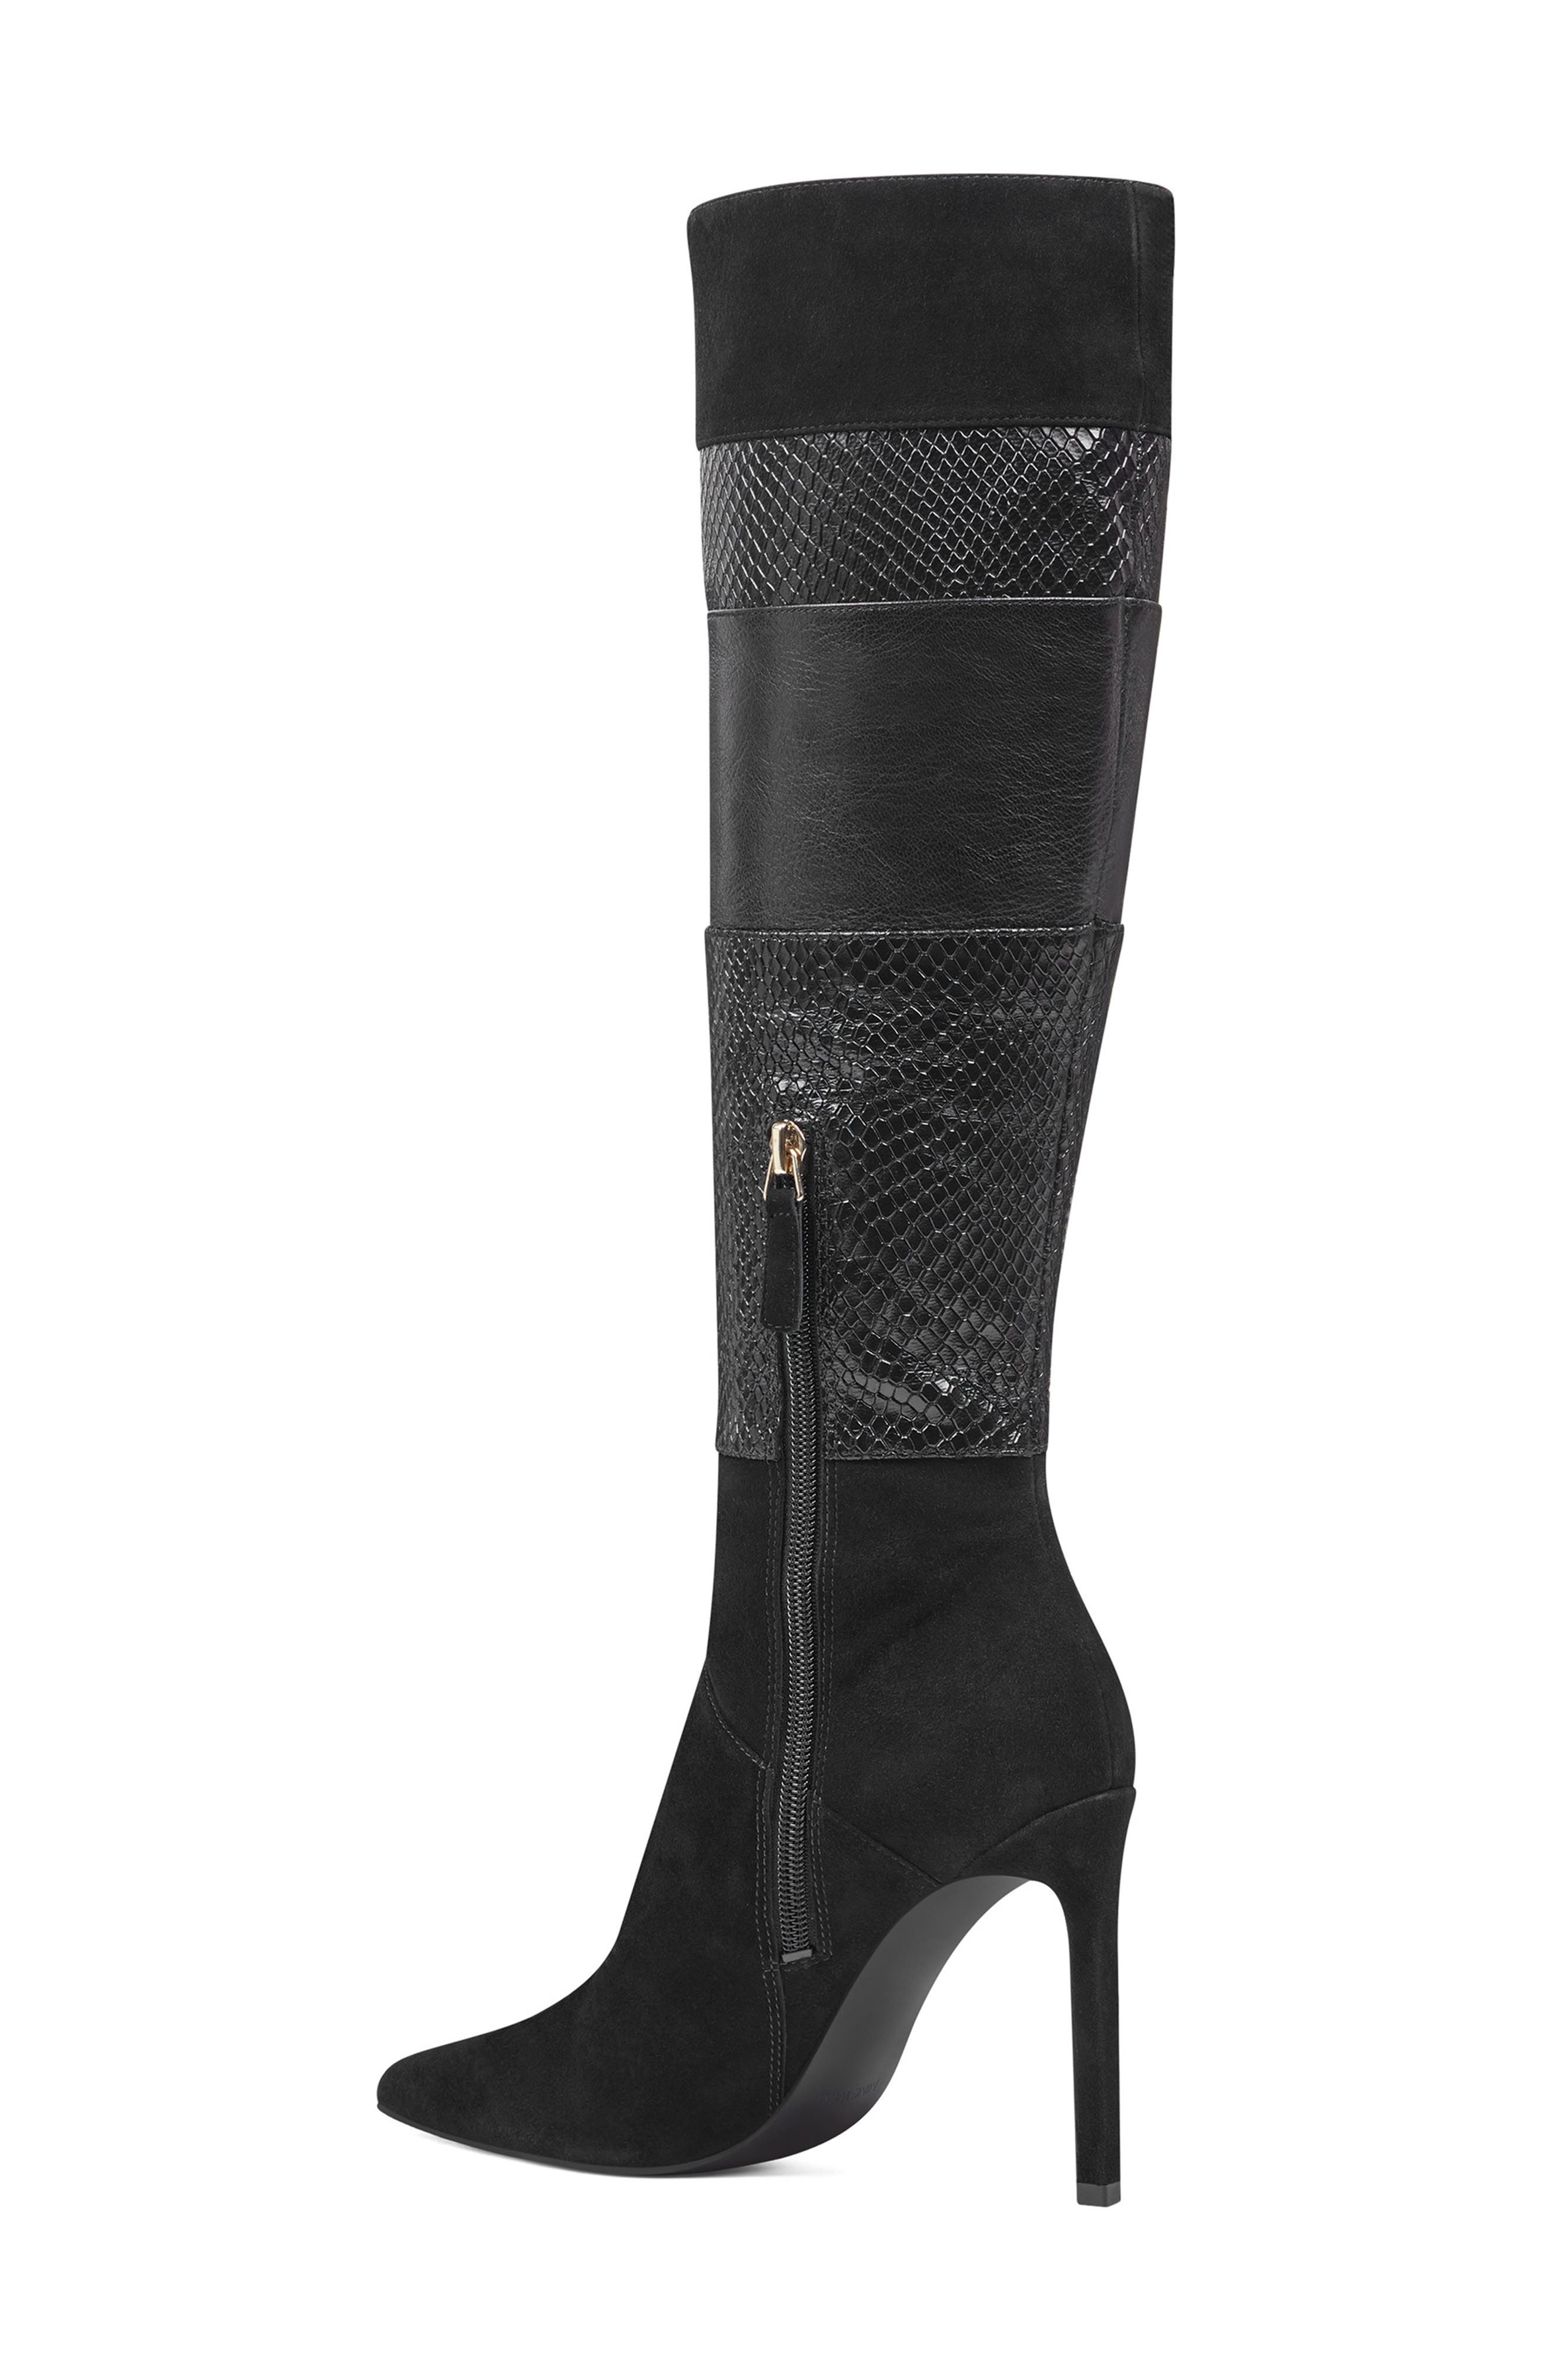 Toprank Blocked Knee High Boot,                             Alternate thumbnail 2, color,                             BLACK SUEDE